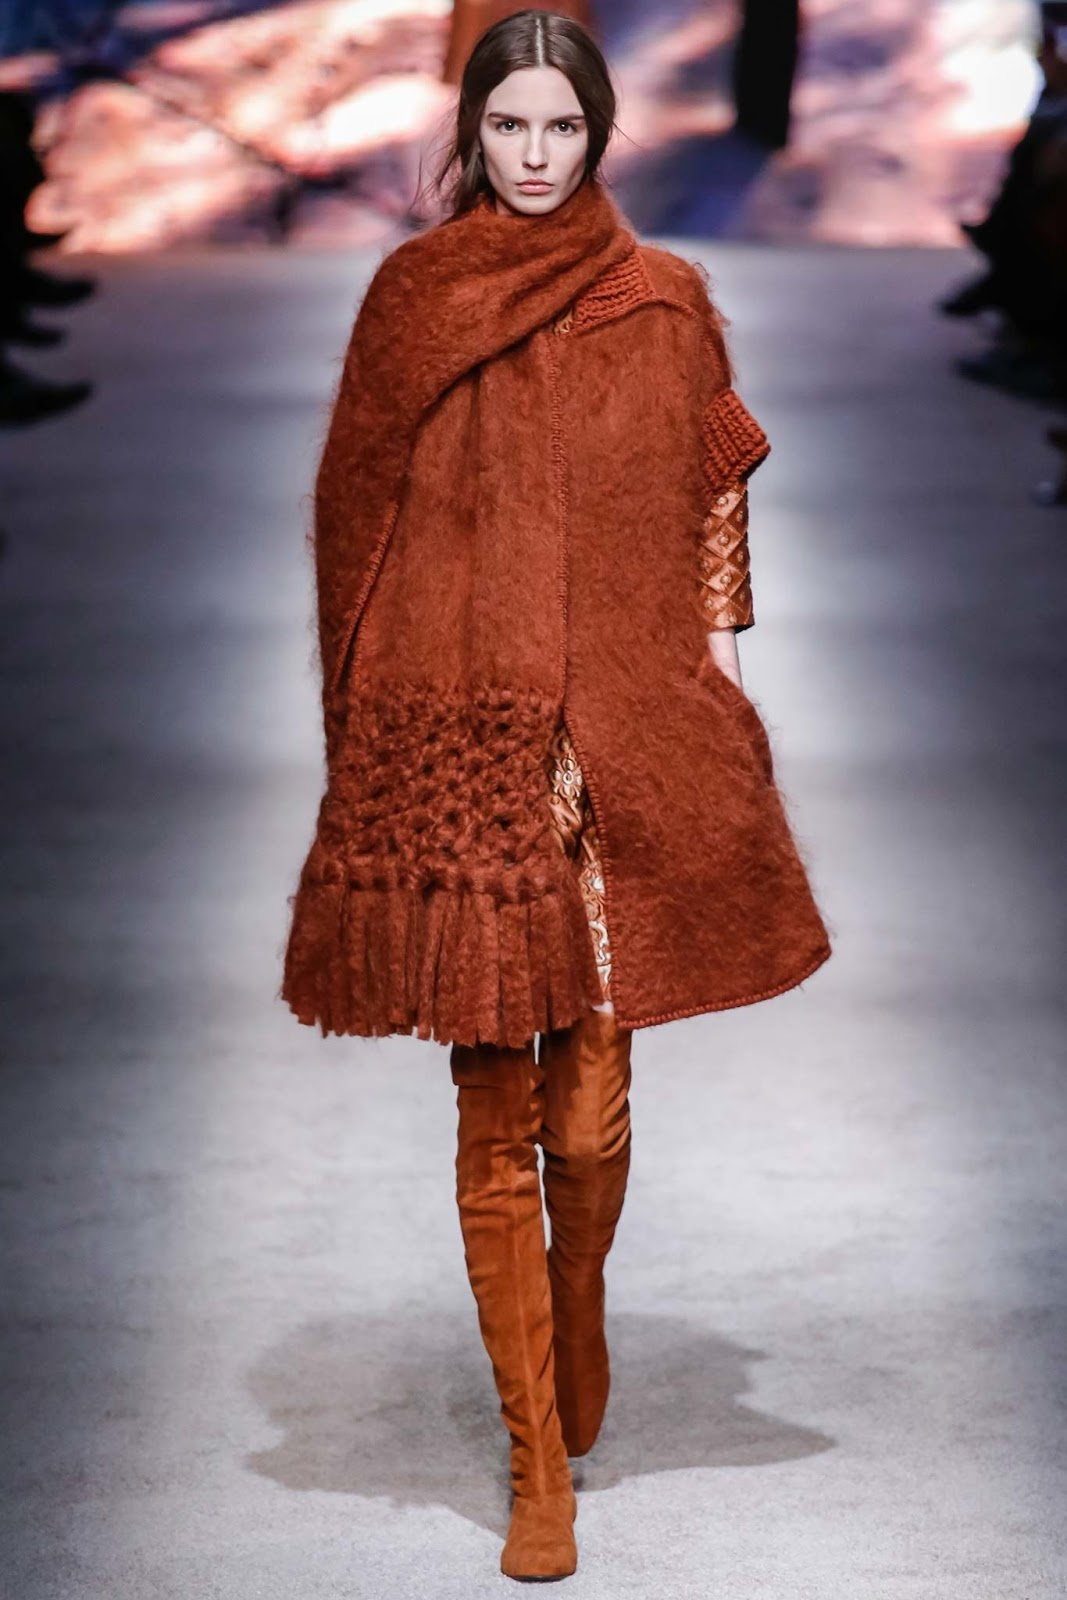 Over the knee boots on Fall/Winter 2015 runway at Alberta Ferretti via www.fashionedbylove.co.uk